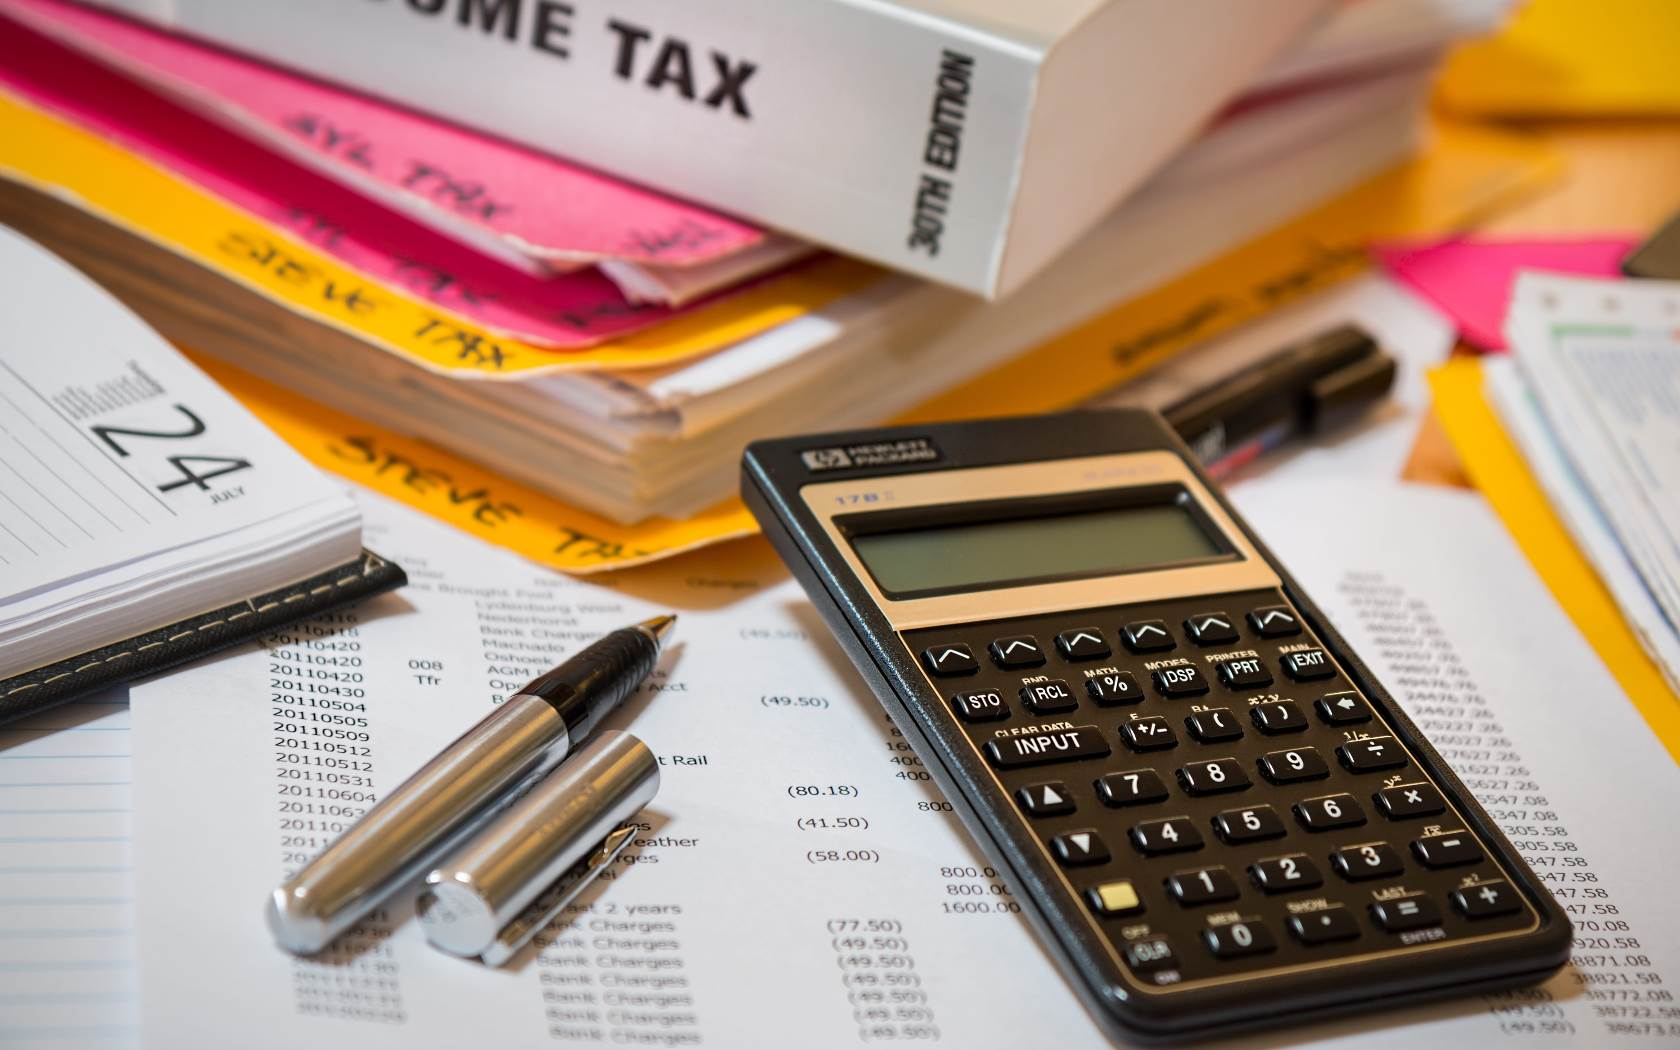 Employees' Deductions for Home Office Expenses (COVID Updates)